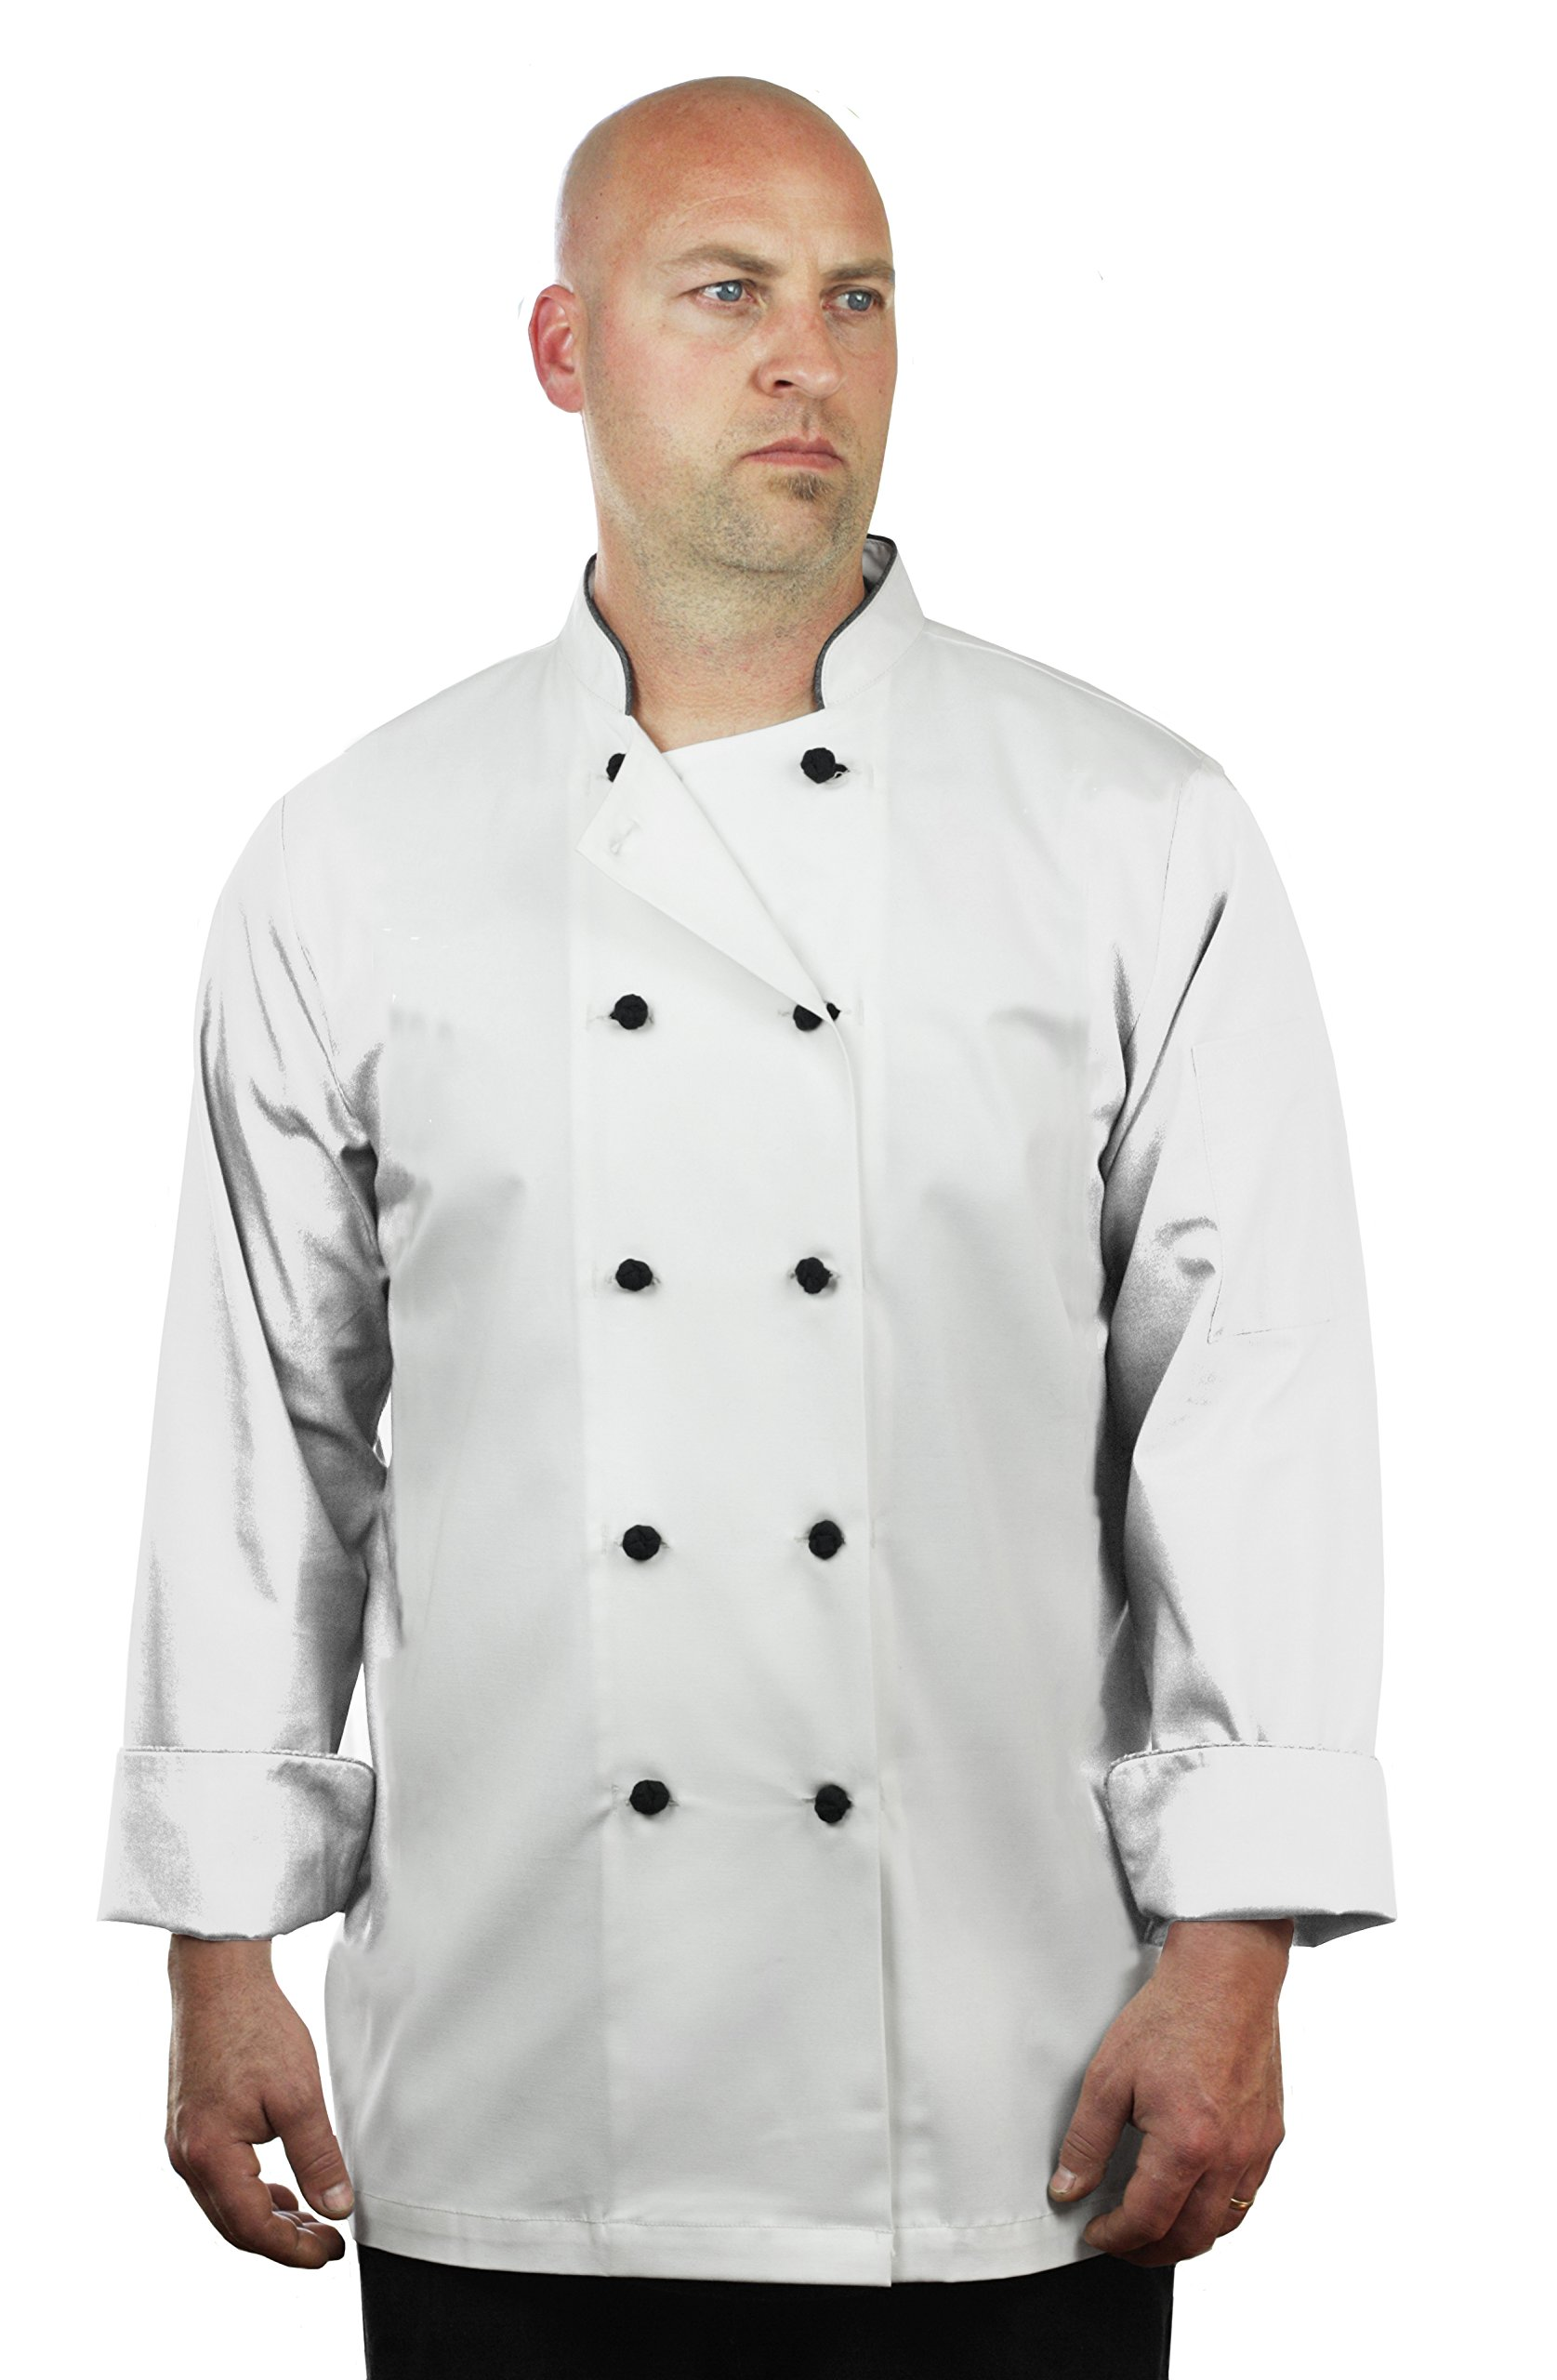 ASD Living Premium Sateen White Long Sleeve Chef Coat,X-Large